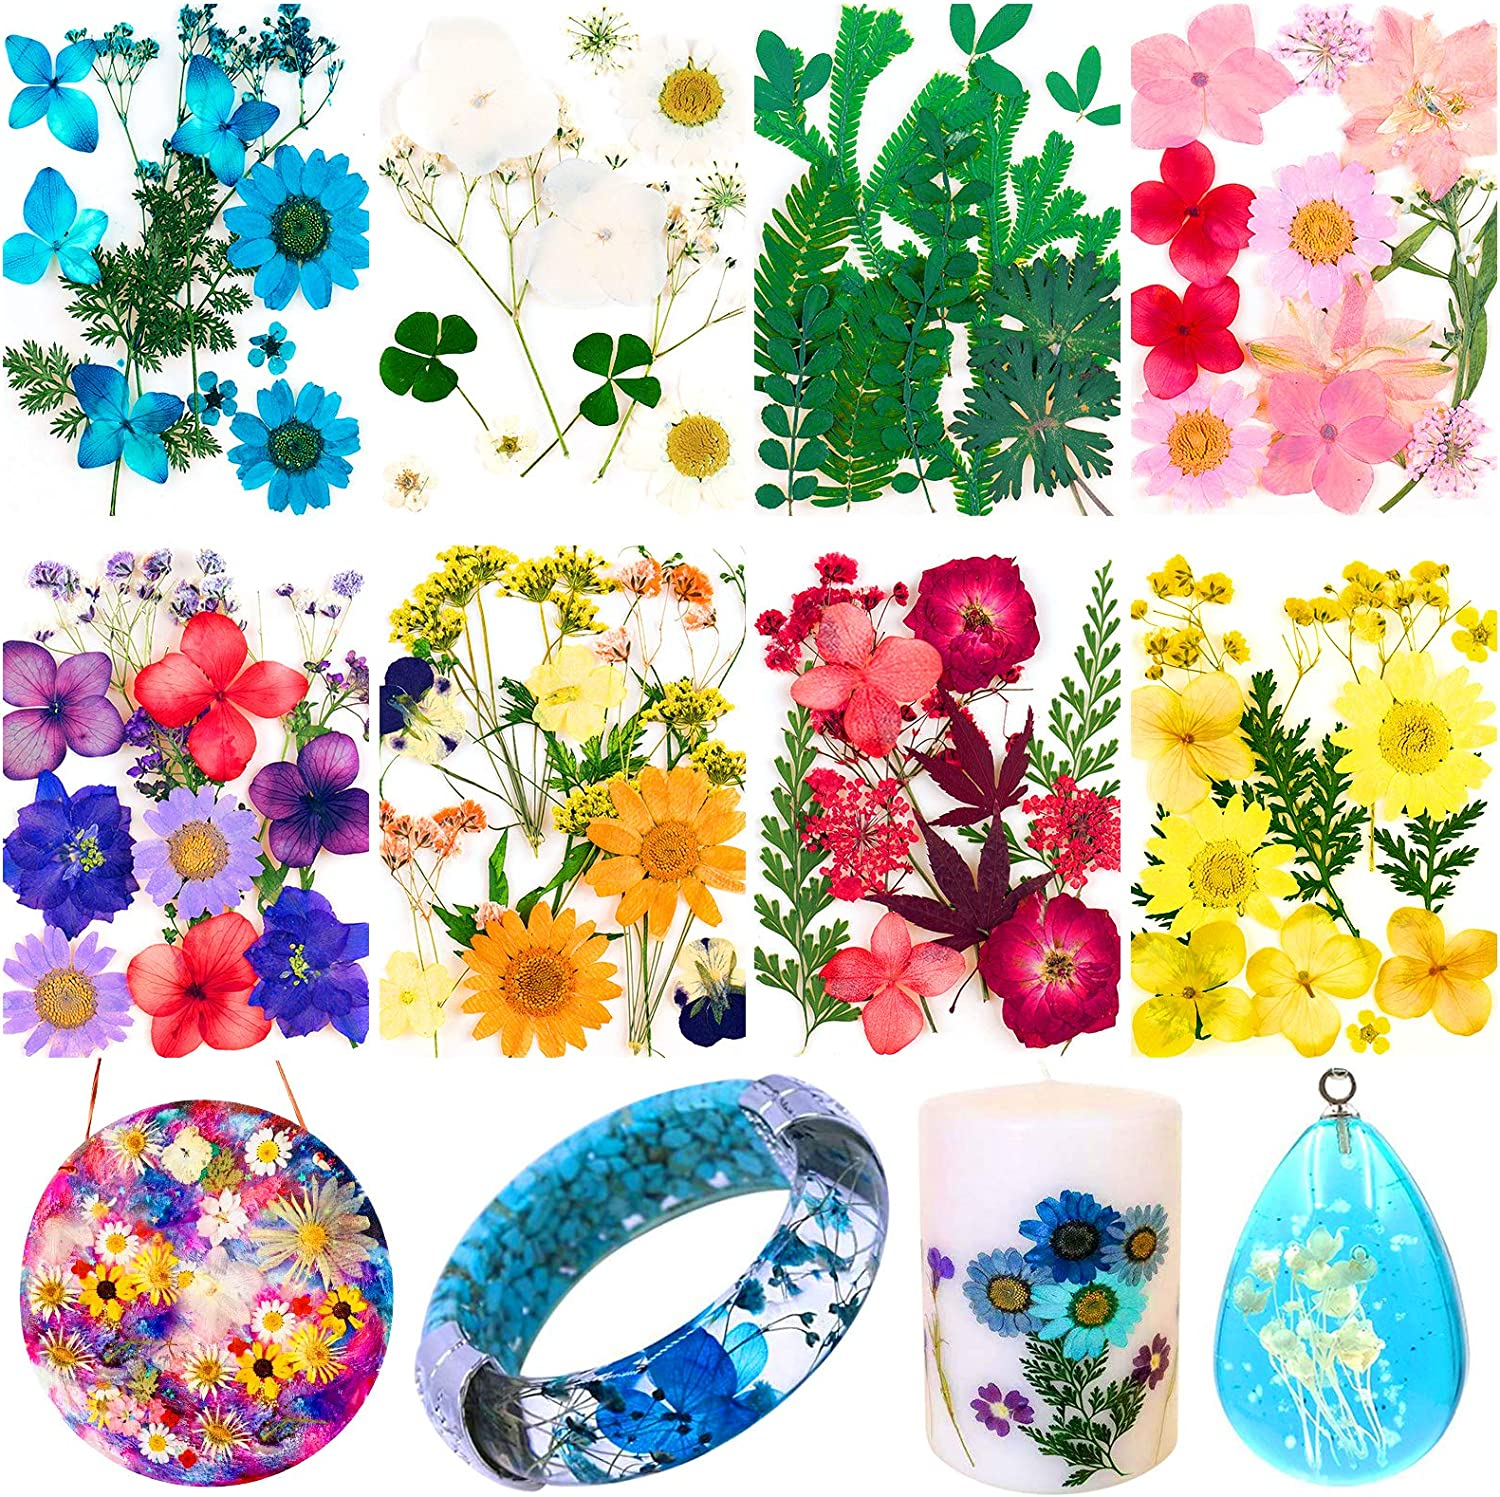 96PCS Real Dried Pressed Flowers, Dry Pressed Flowers for Resin Natural Pressed Flowers Leaves Colorful Dried Pressed Flowers for DIY Crafts Candle Jewelry Nail Pendant Making